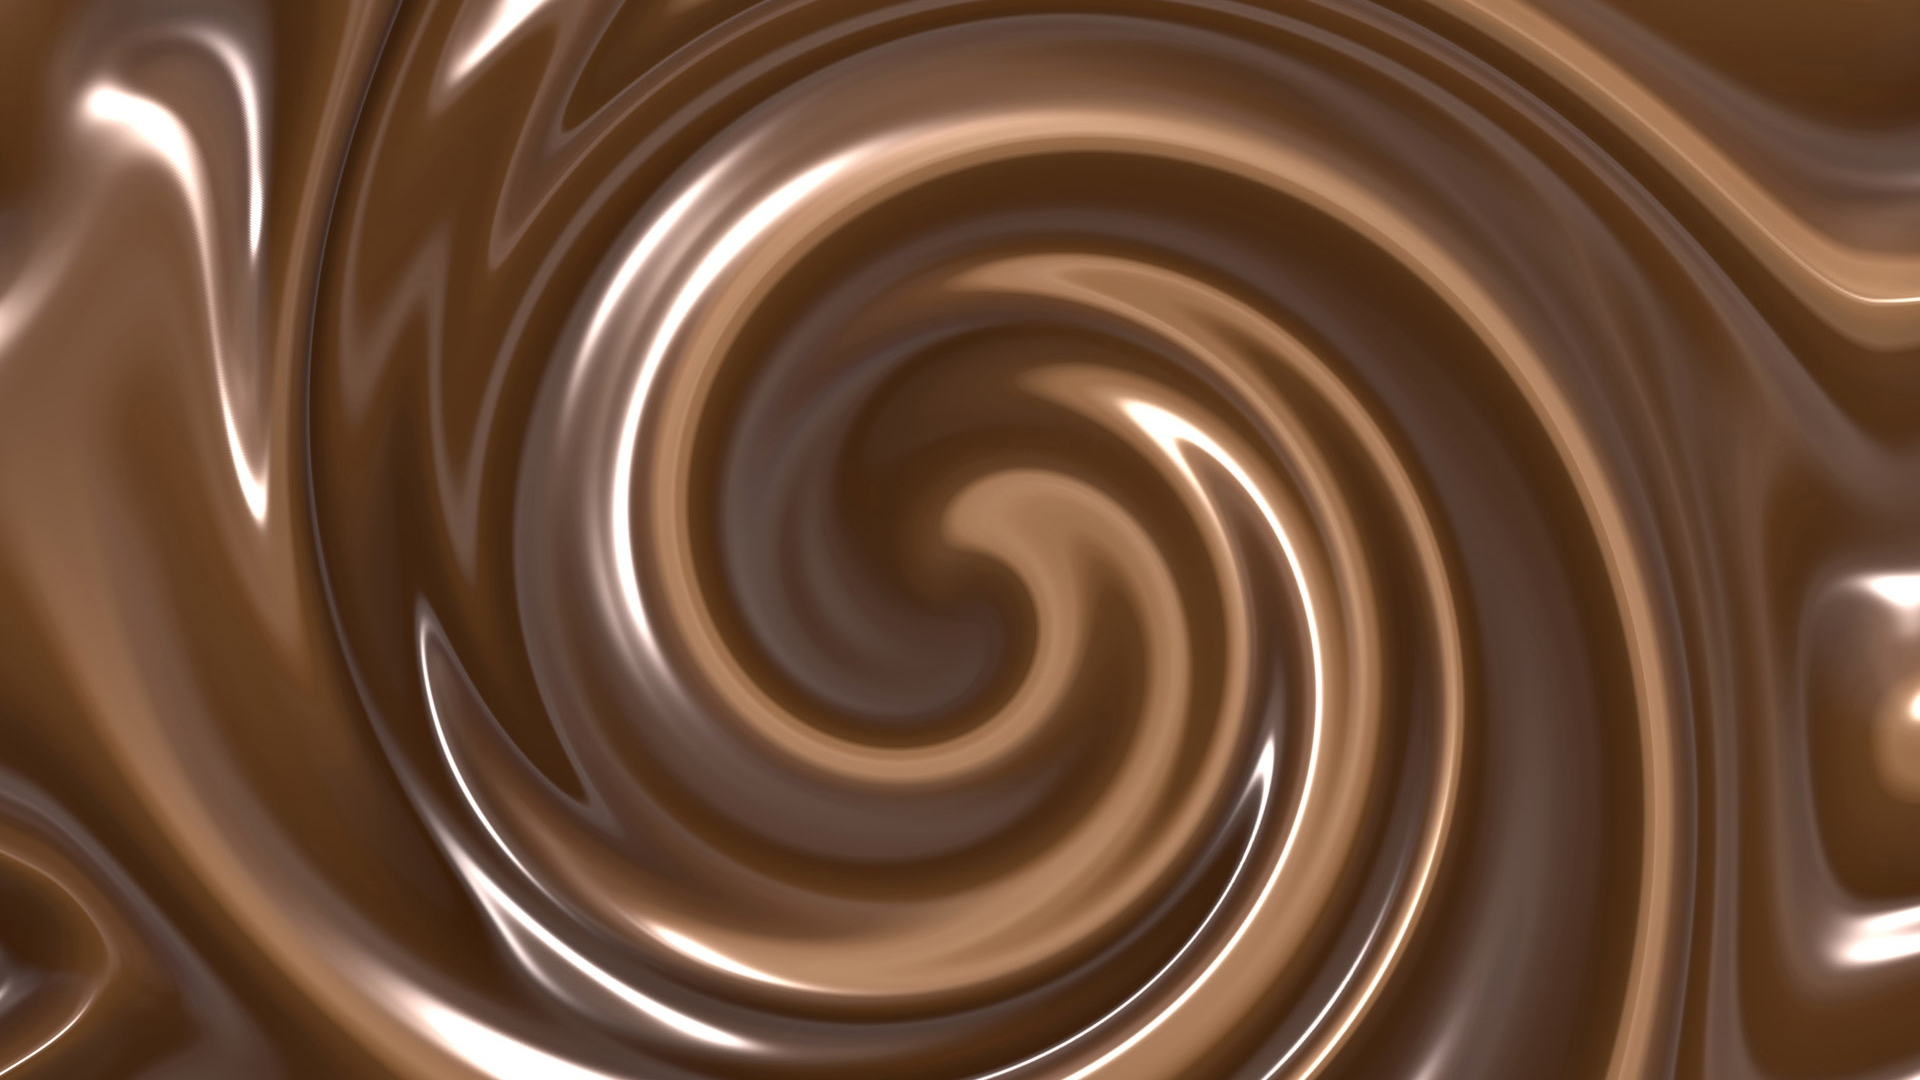 chocolate_liquid_tasty_sweet_88347_1920x1080.jpg